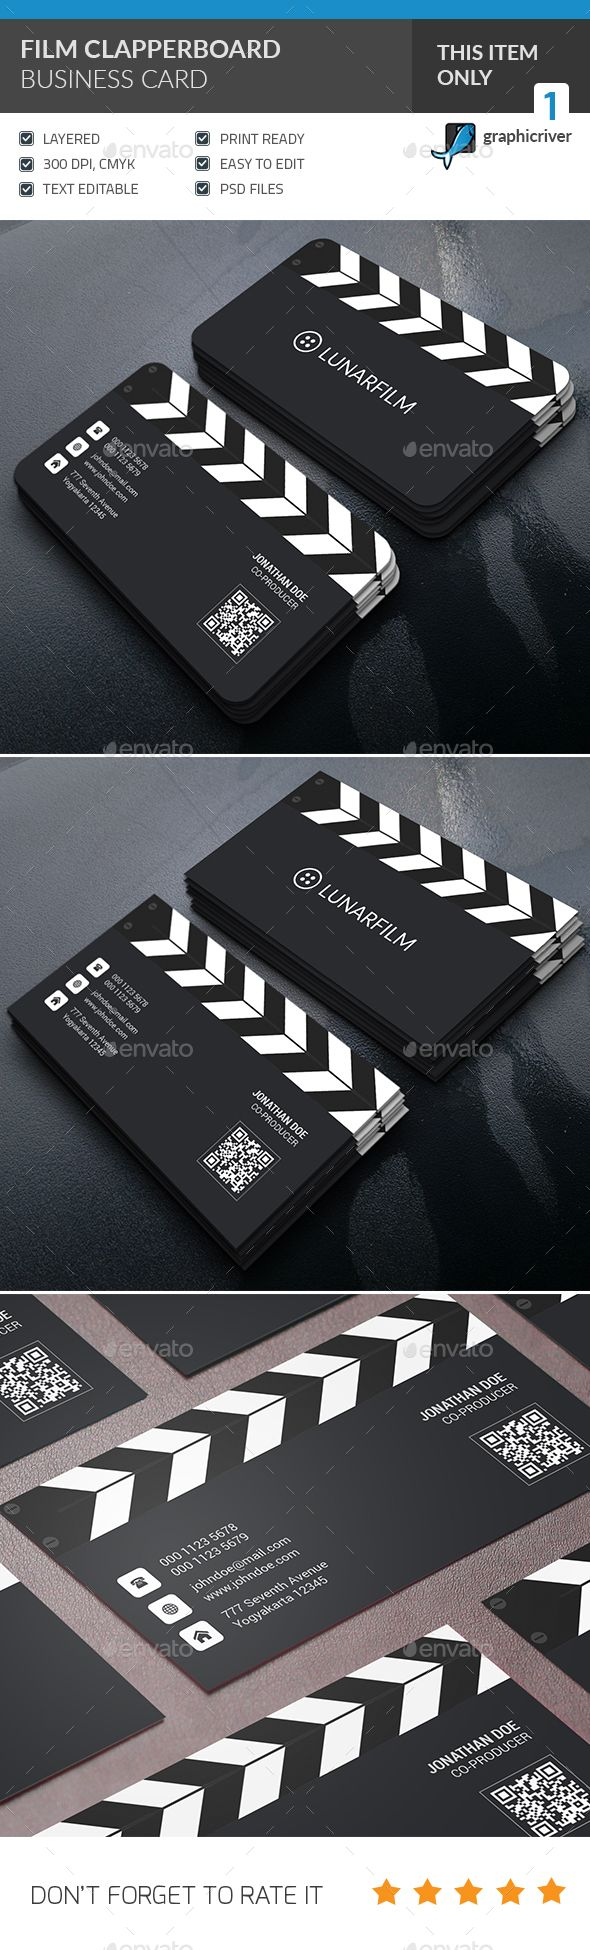 Film Clipperboard Business Card - PSD Template • Only available here ➝ http://graphicriver.net/item/film-clipperboard-business-card/14399584?ref=pxcr